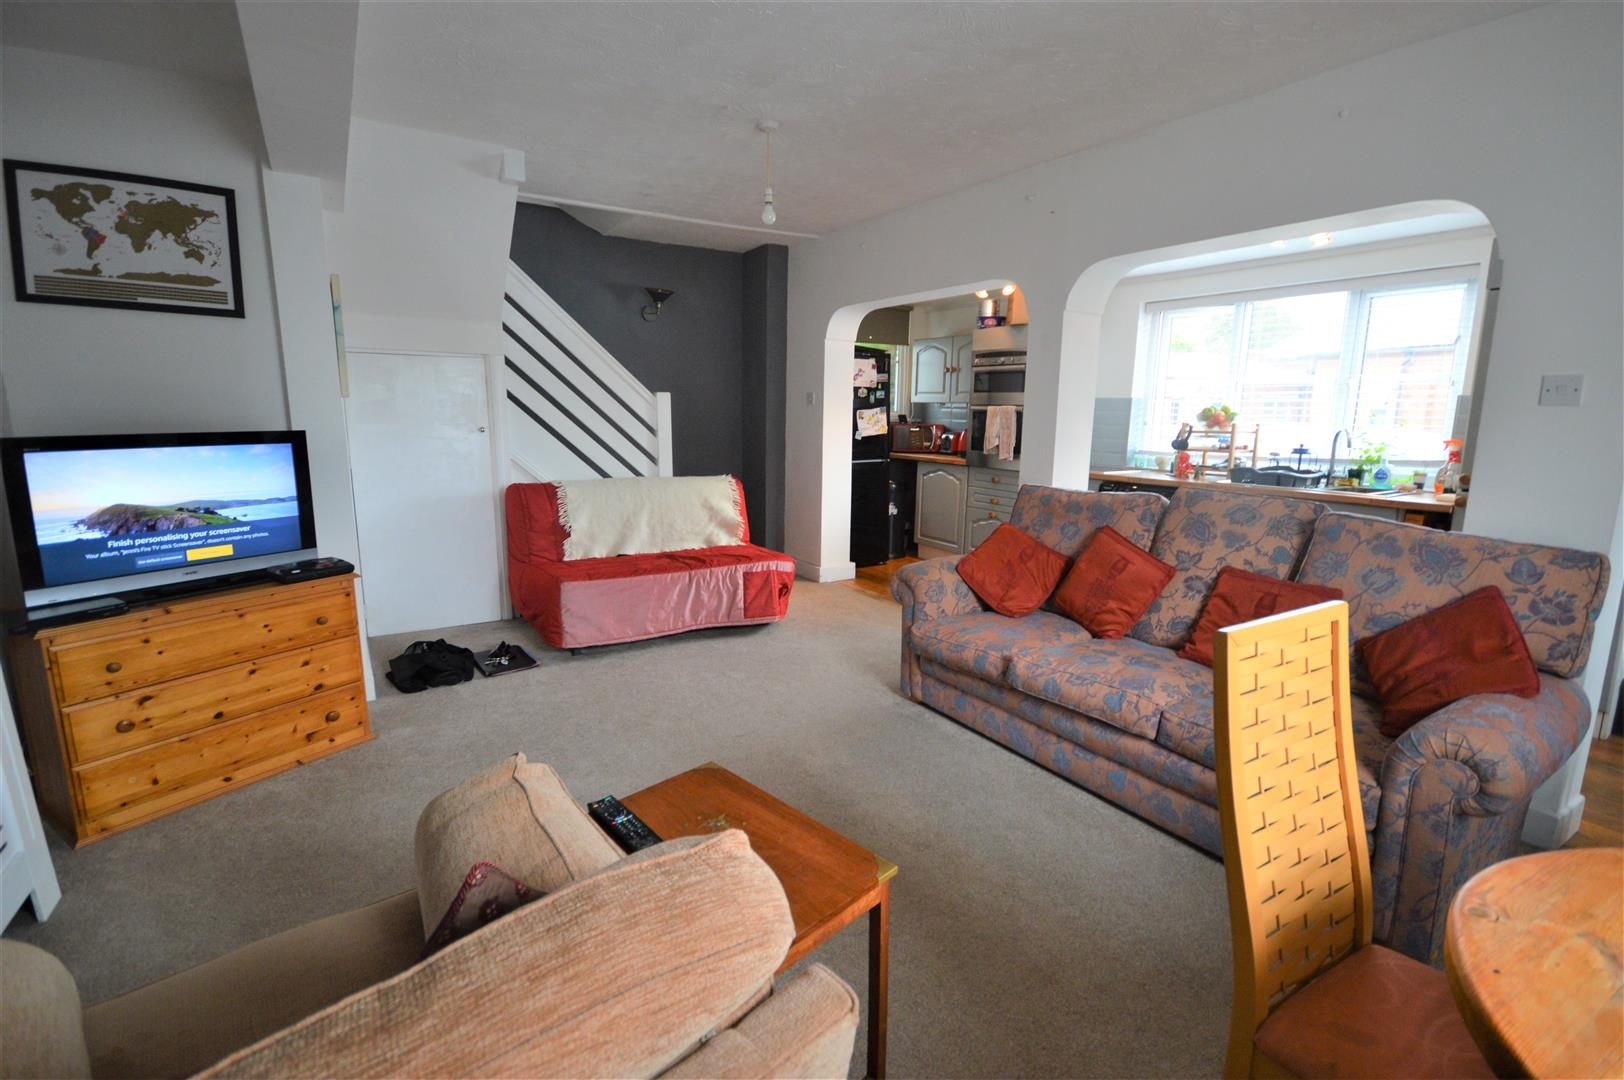 1 bed semi-detached for sale in Leominster  - Property Image 3